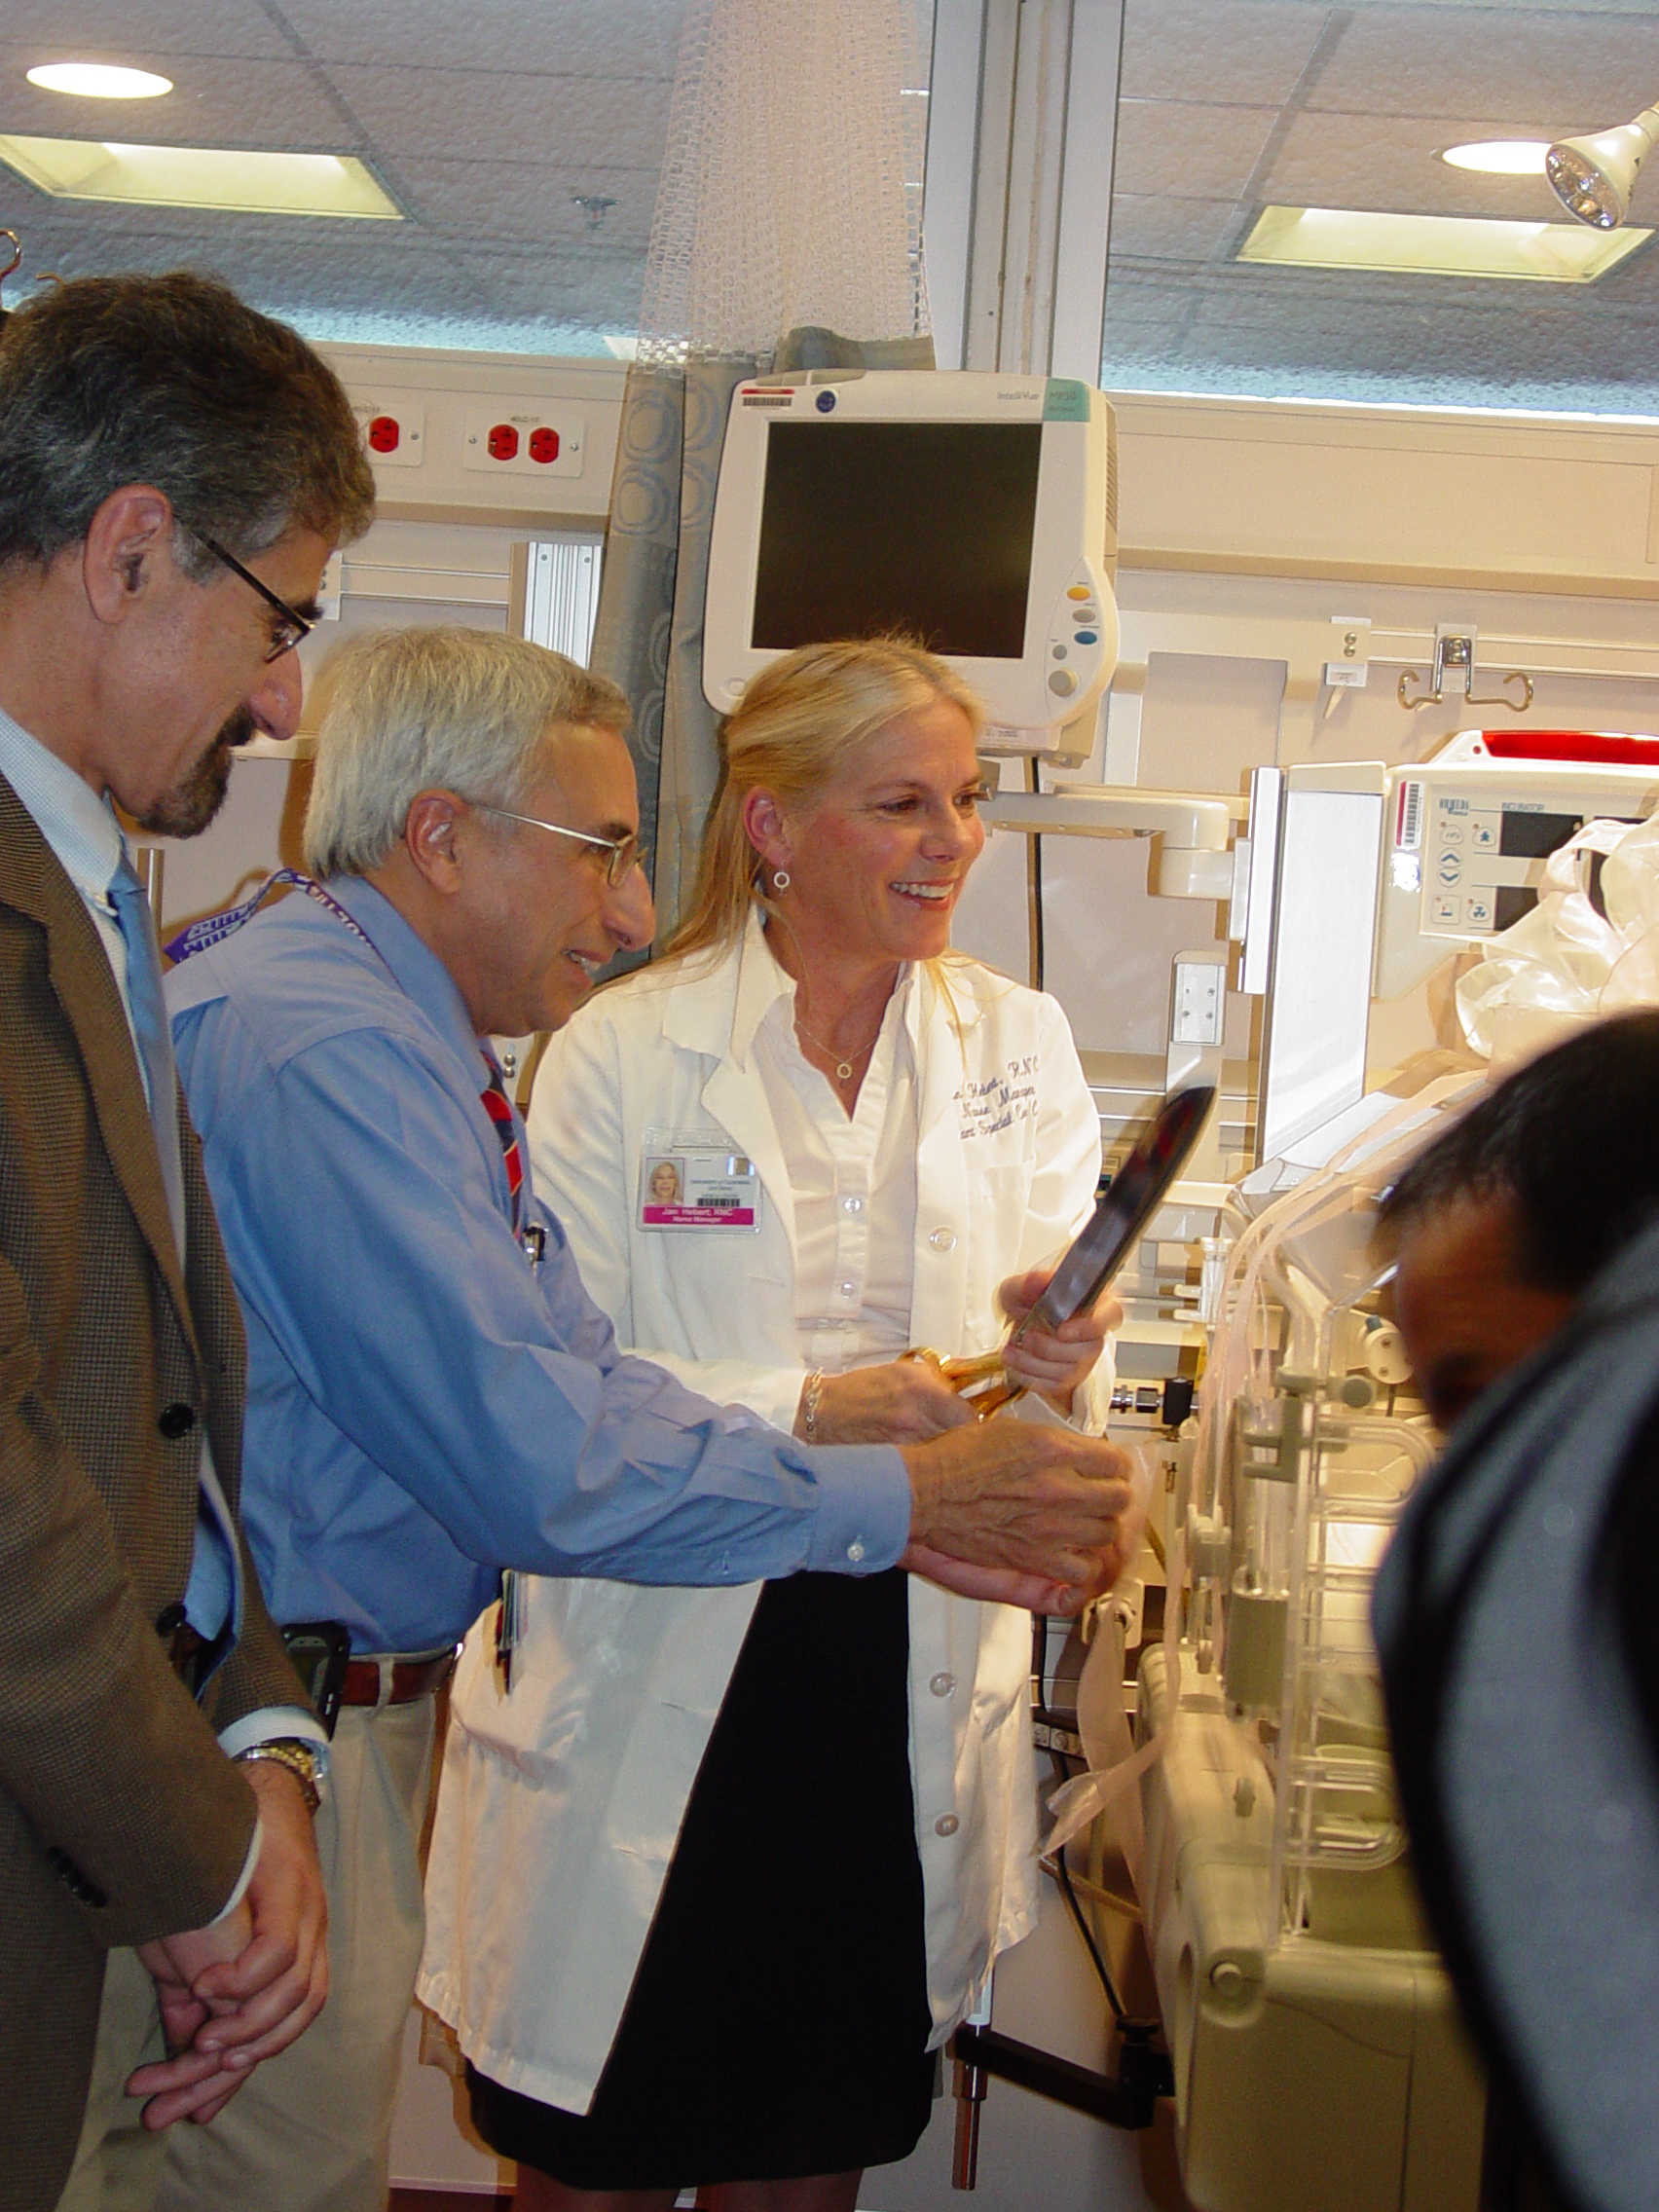 Uc San Diego Medical Center Expands Neonatal Intensive